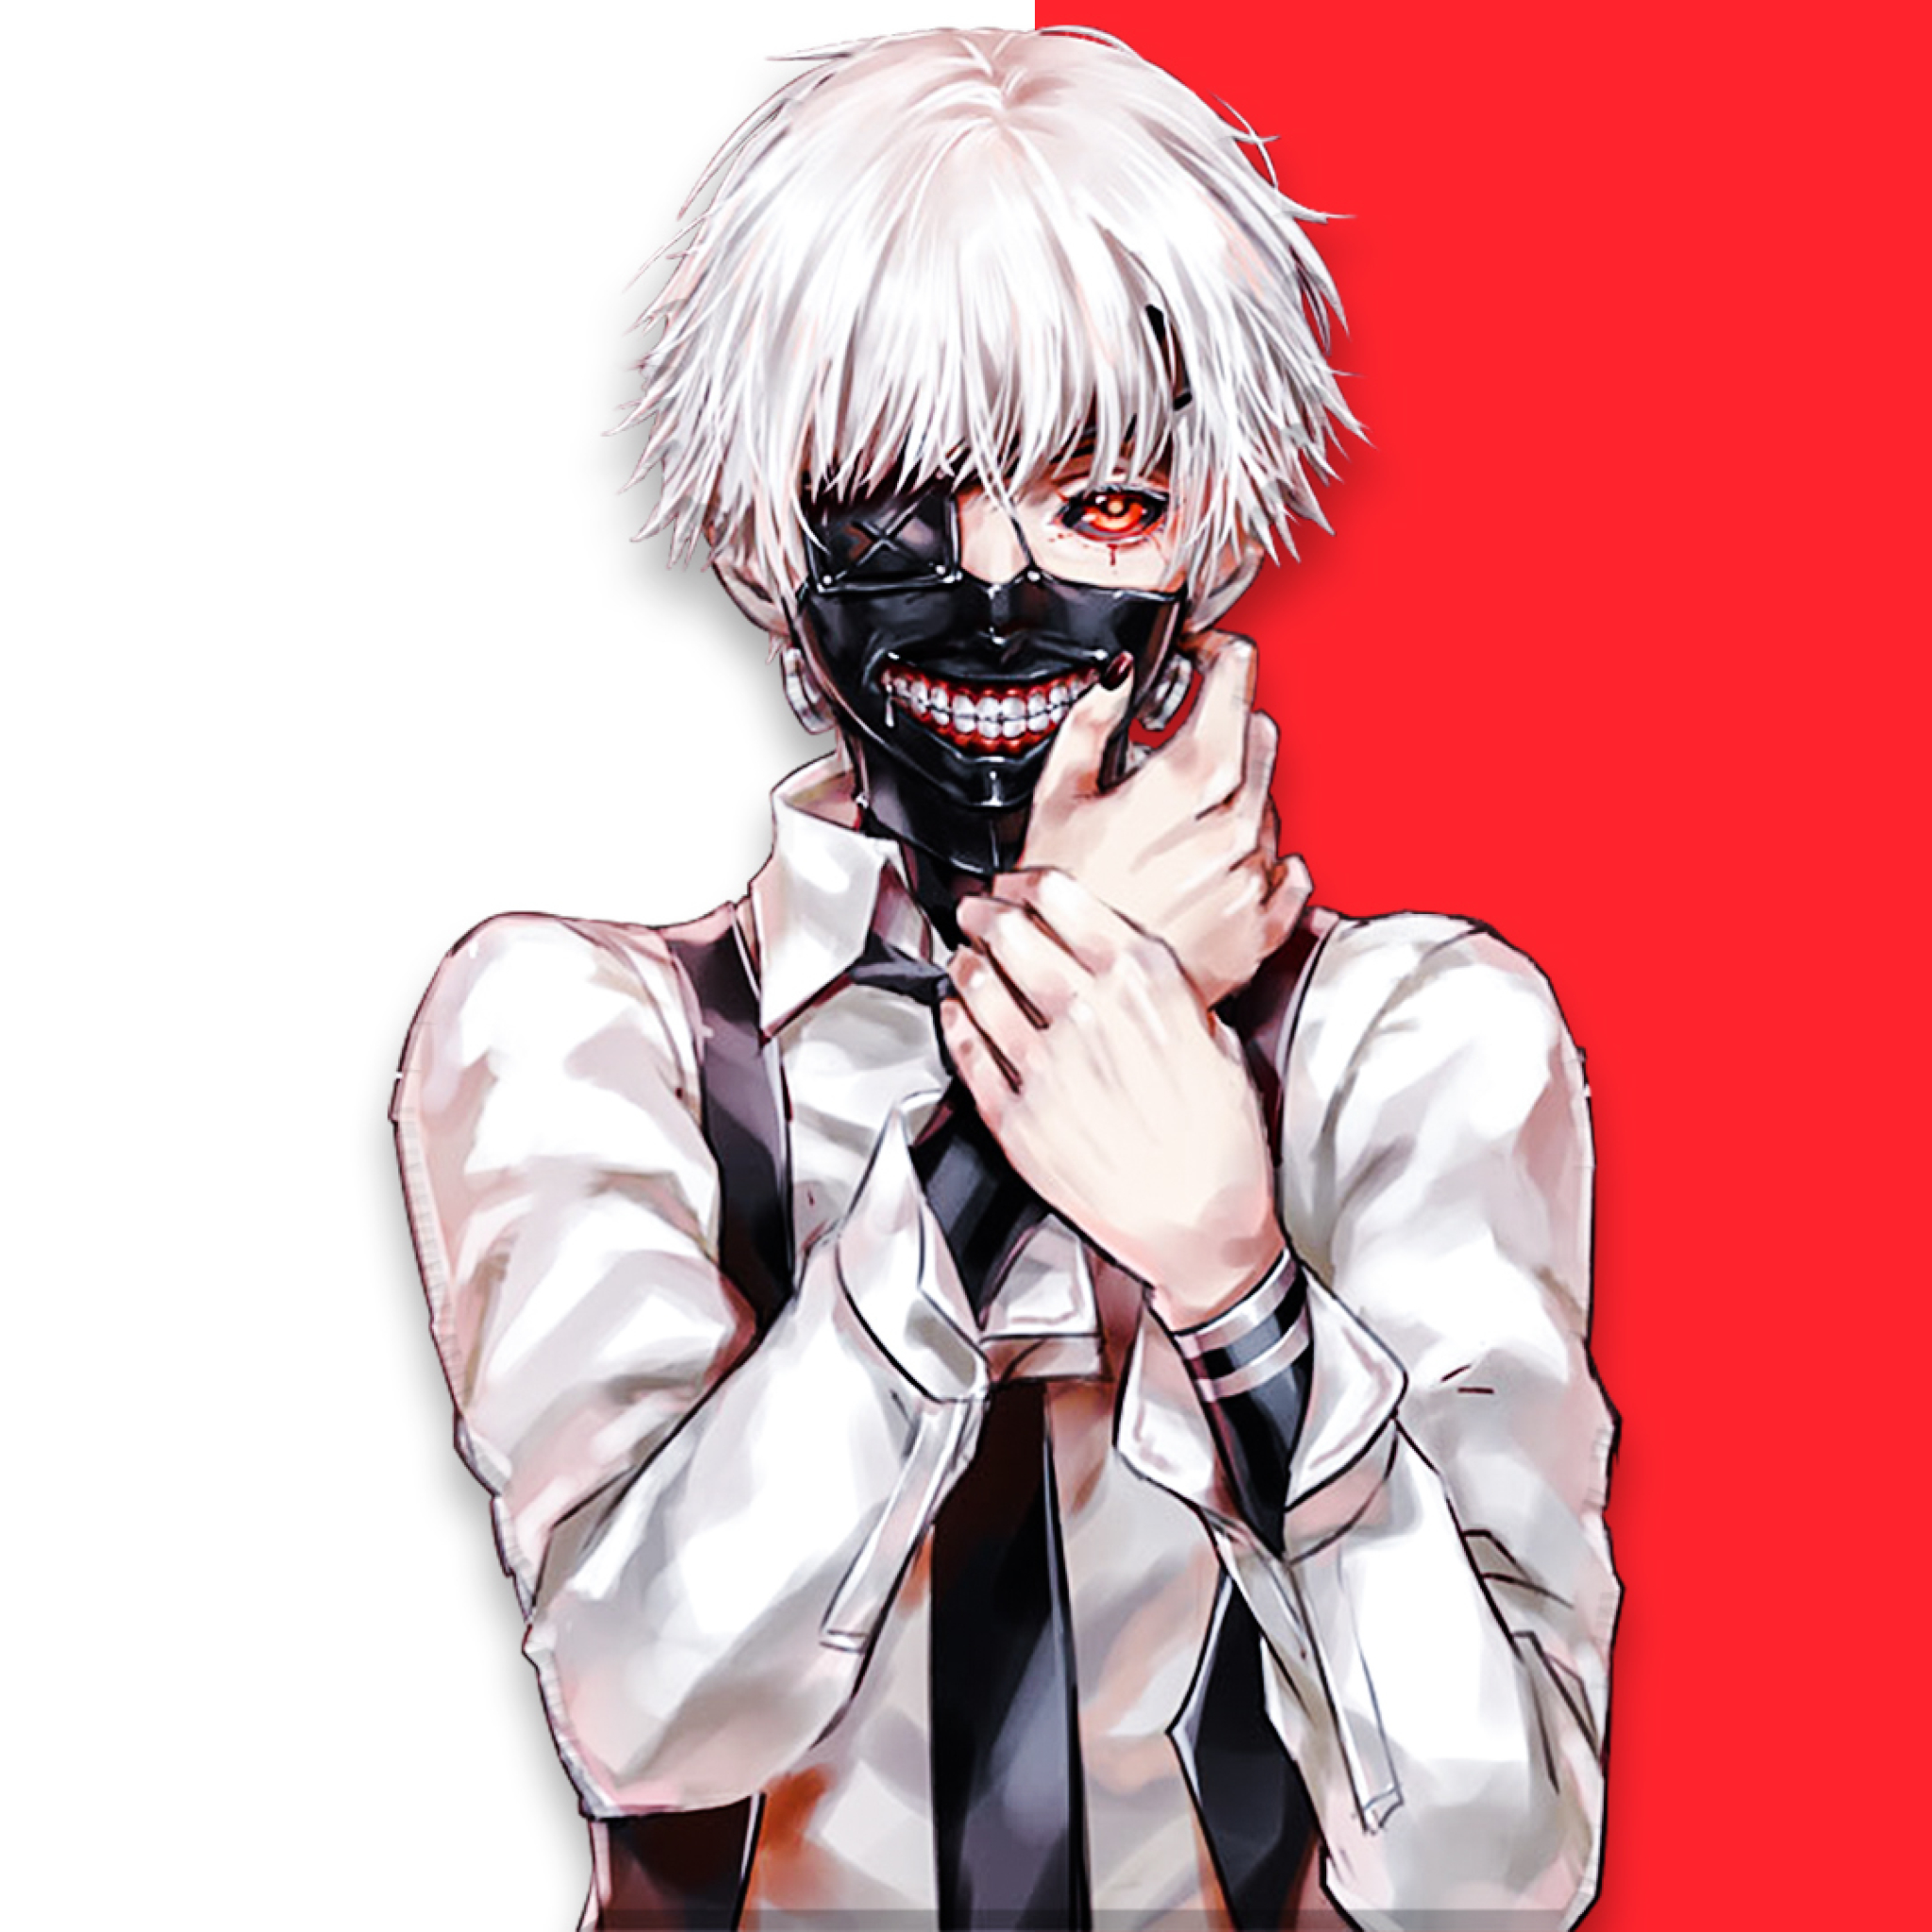 Ken Kaneki Tokyo Ghoul Art Wallpaper in 2048x2048 Resolution